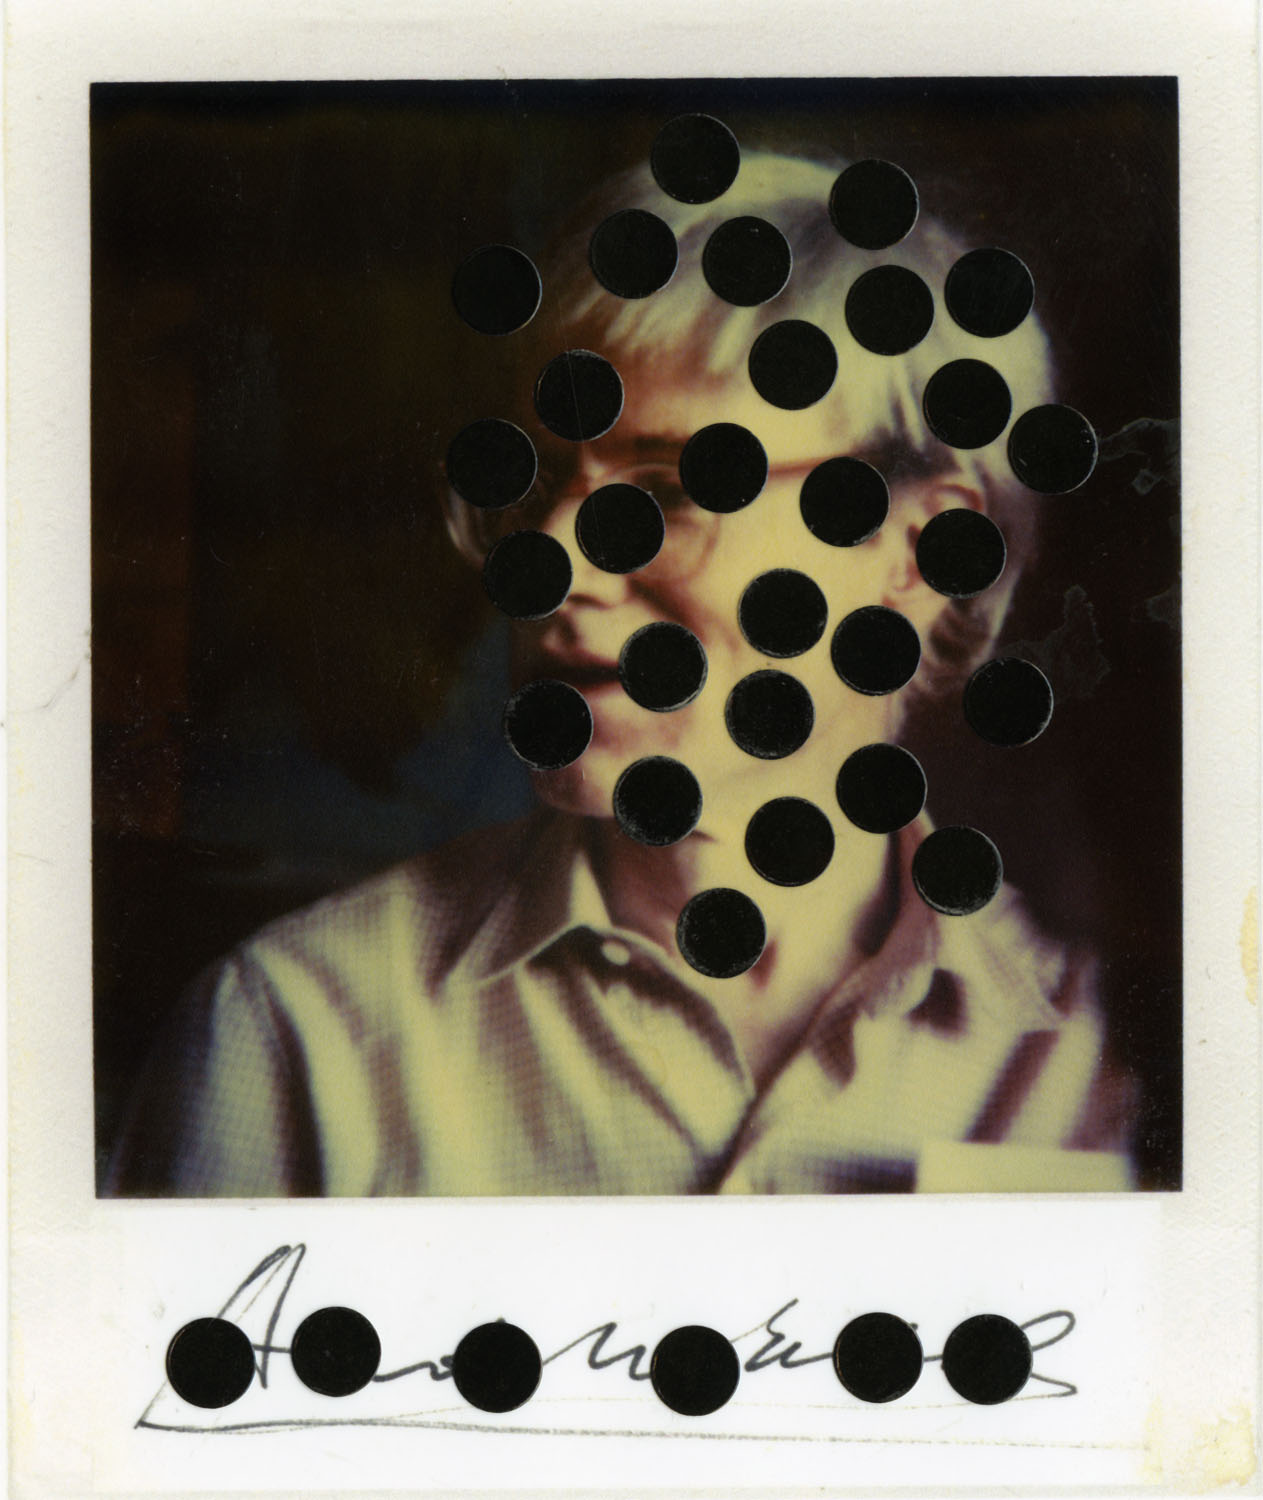 MARK SINK  ANDY AND DOTS SIGNED, 1982  ARCHIVAL PIGMENT PRINT